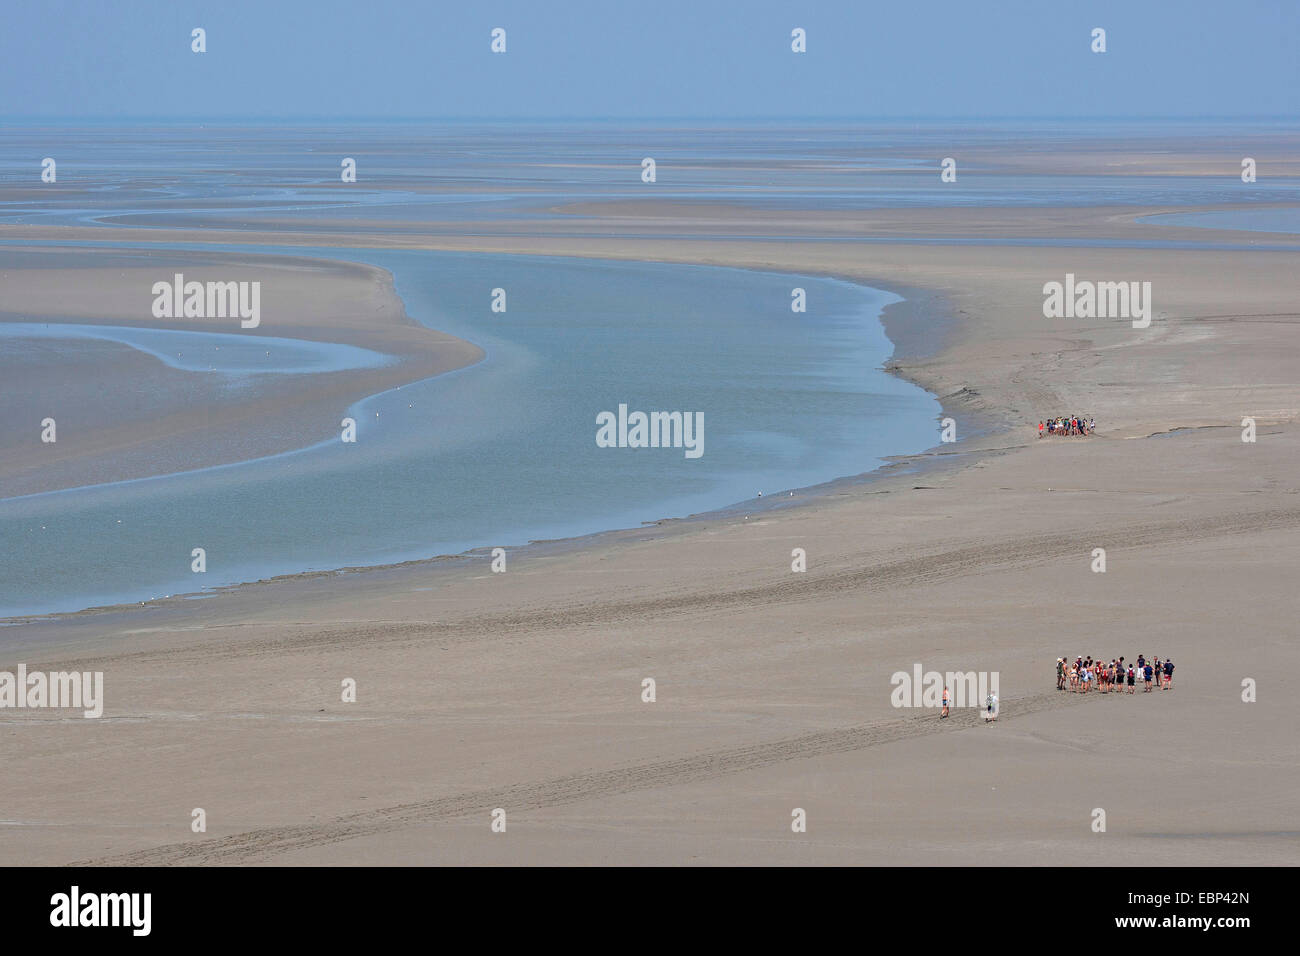 sandy tideland at low tide with tidal flat hikers, France, Brittany - Stock Image